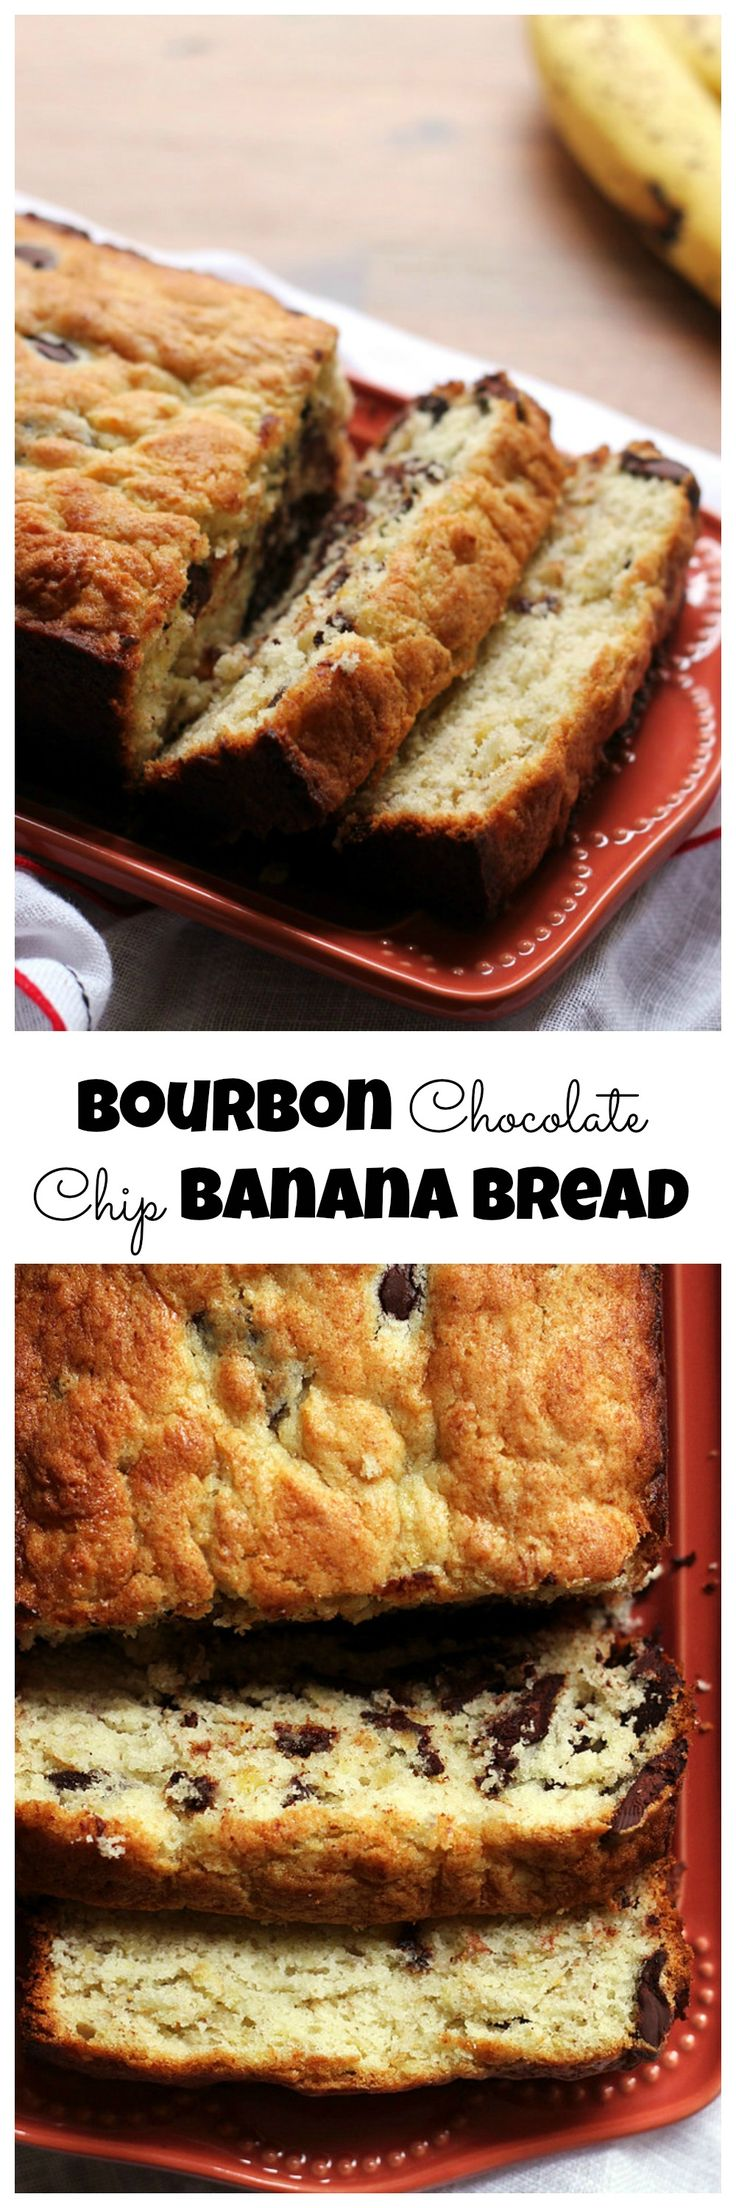 All good things come together in this bourbon chocolate chip banana bread – it makes the perfect morning treat!